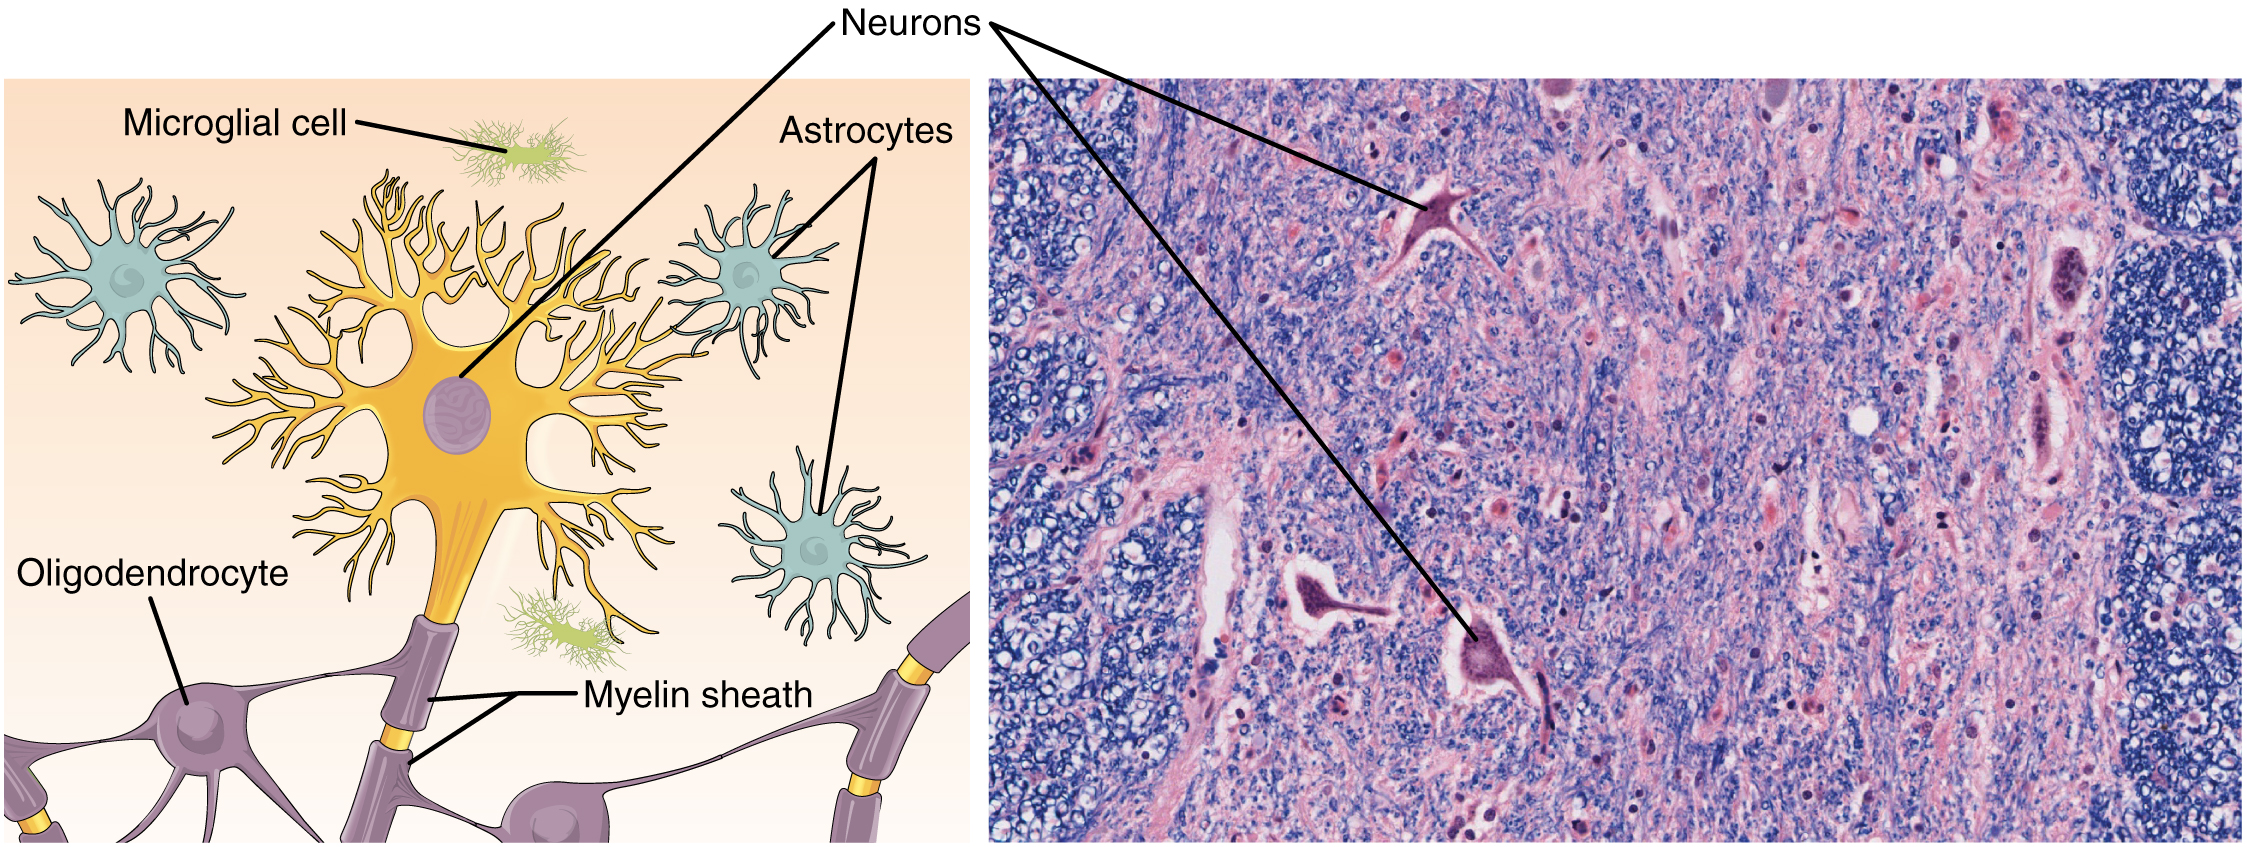 Anatomy and Physiology - Nervous Tissue Mediates Perception and Response